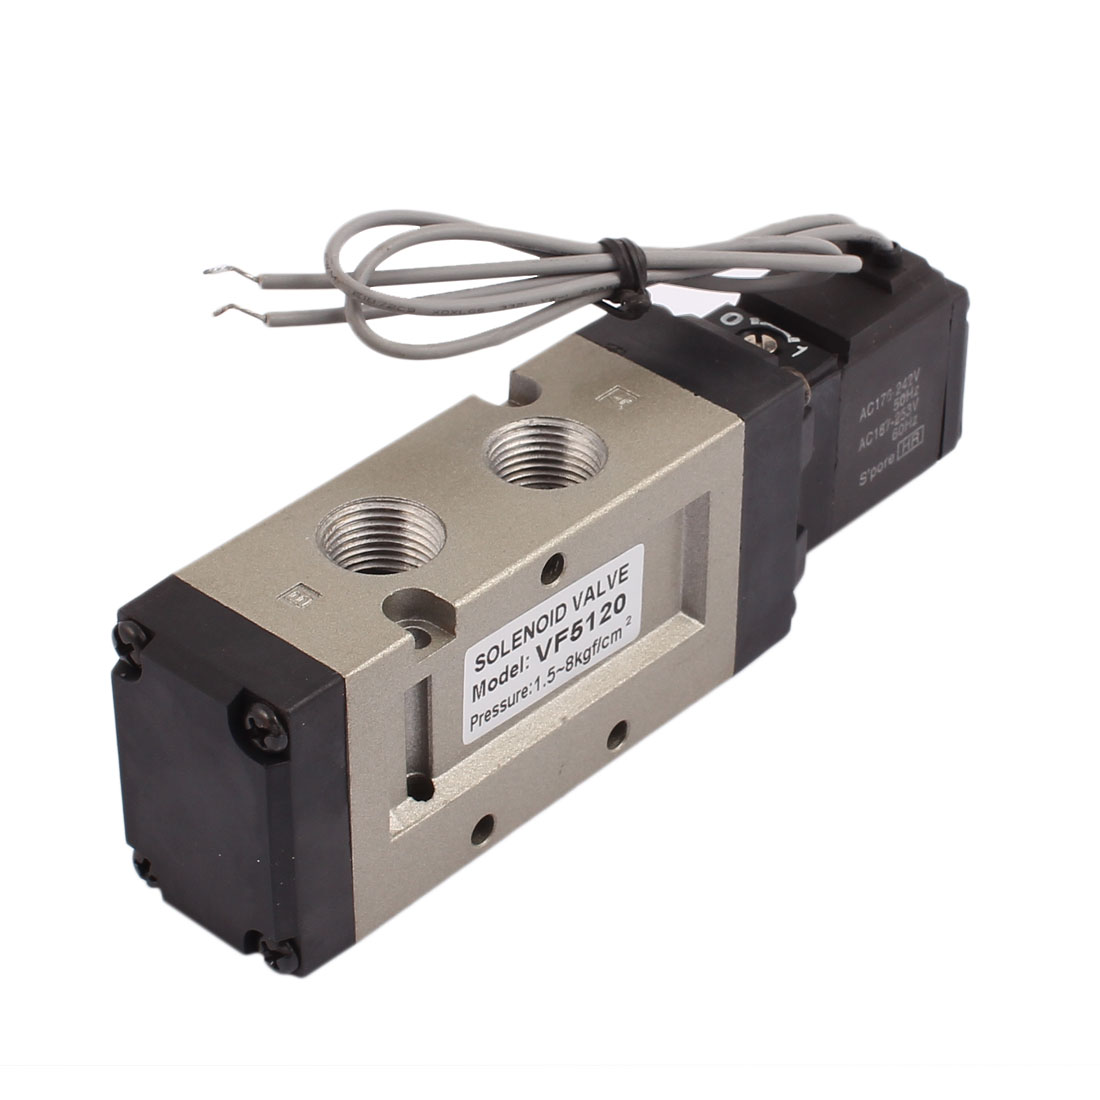 AC 220V 2 Position 5 Way Pneumatic Electromagnetic Solenoid Valve VF5120-4GB